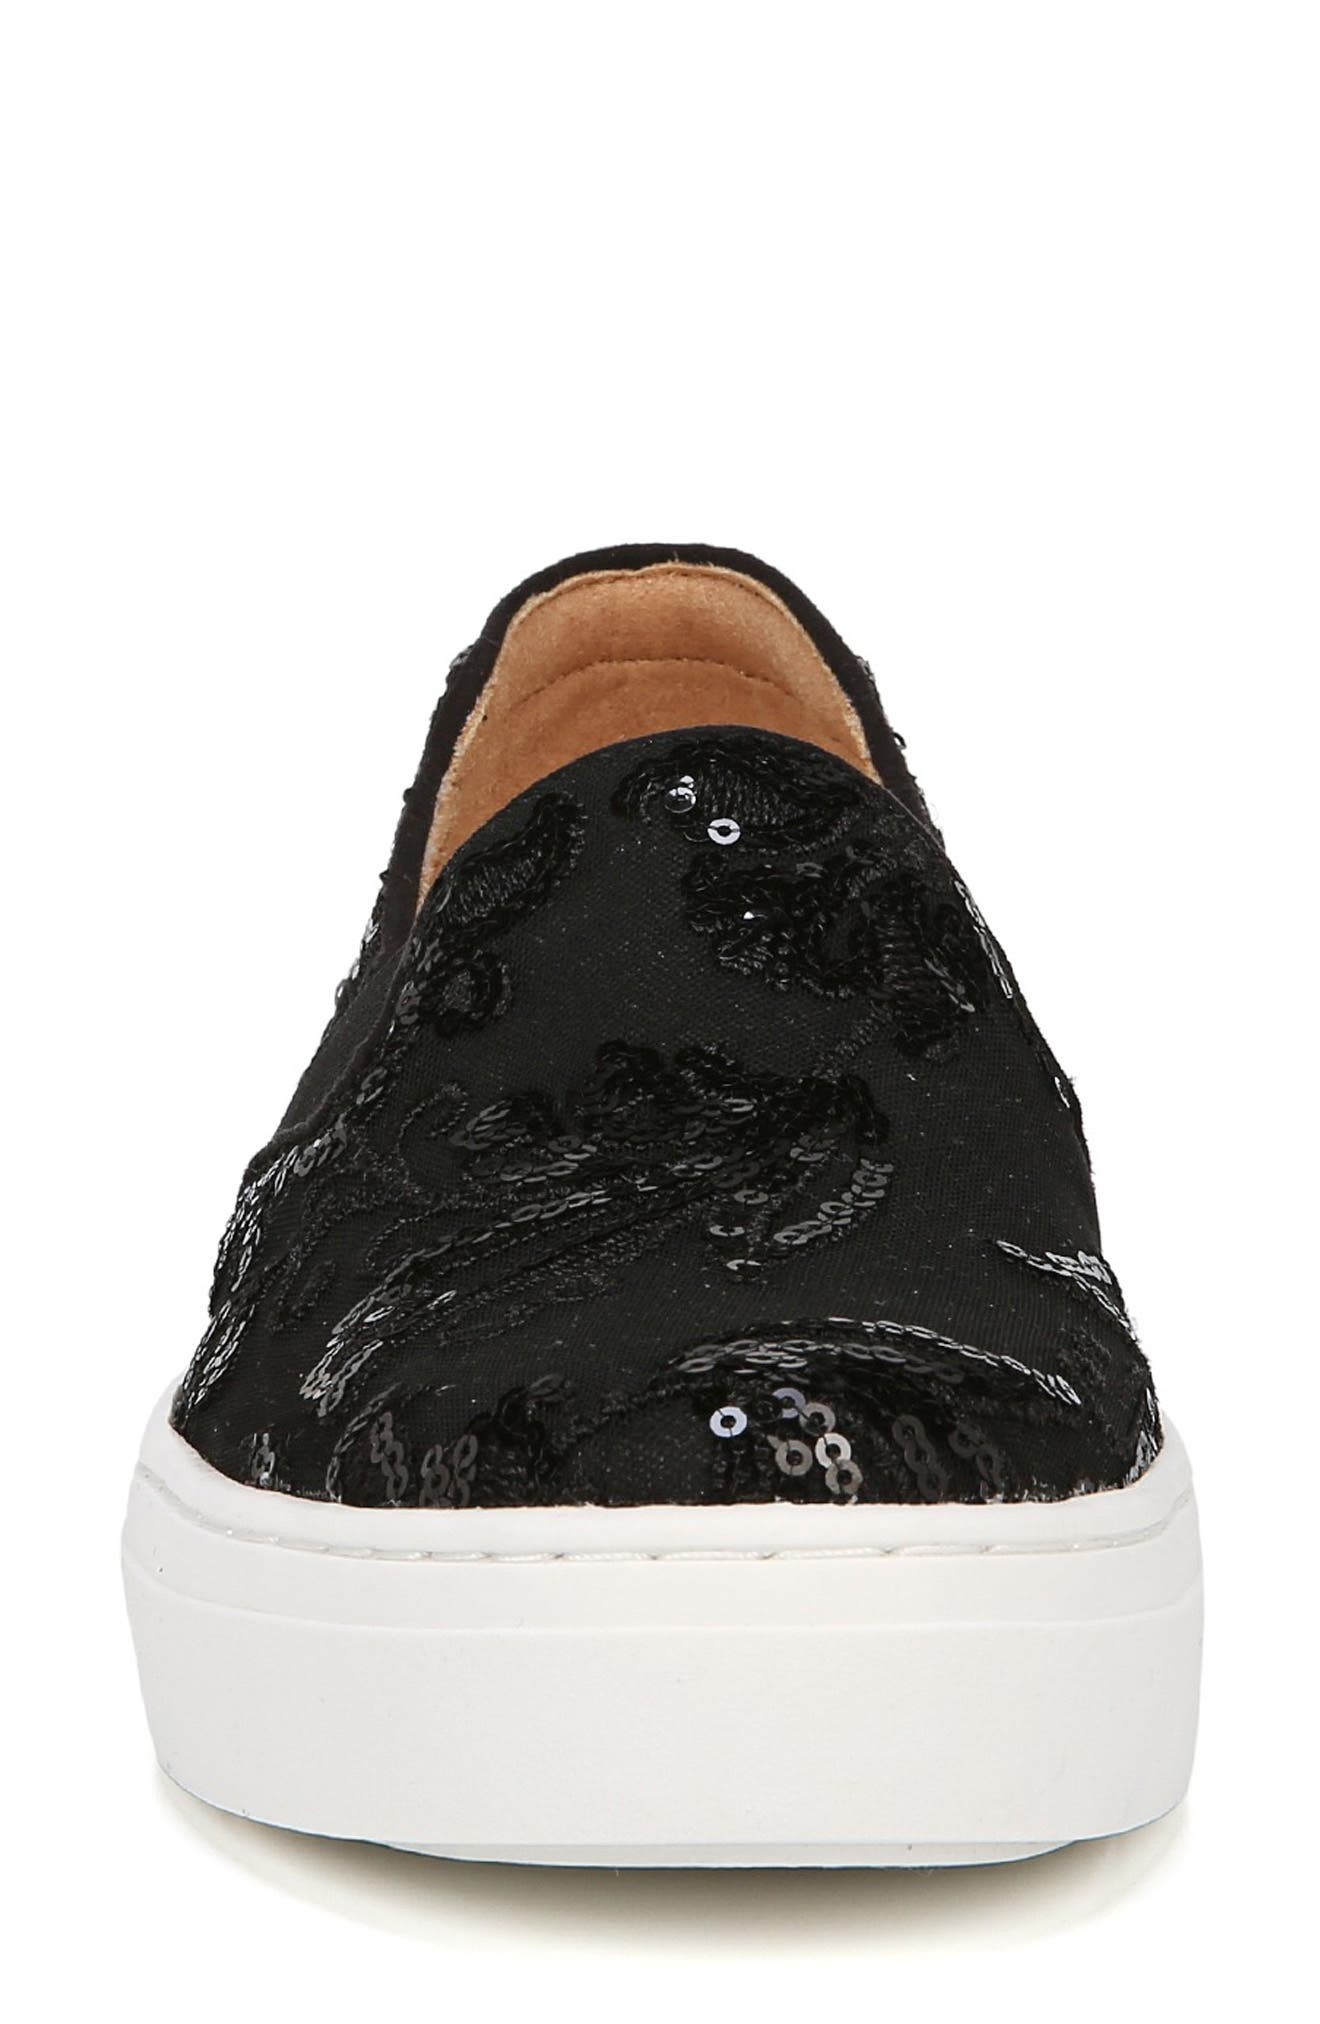 NATURALIZER, Carly Slip-On Sneaker, Alternate thumbnail 4, color, BLACK EMBROIDERED LACE